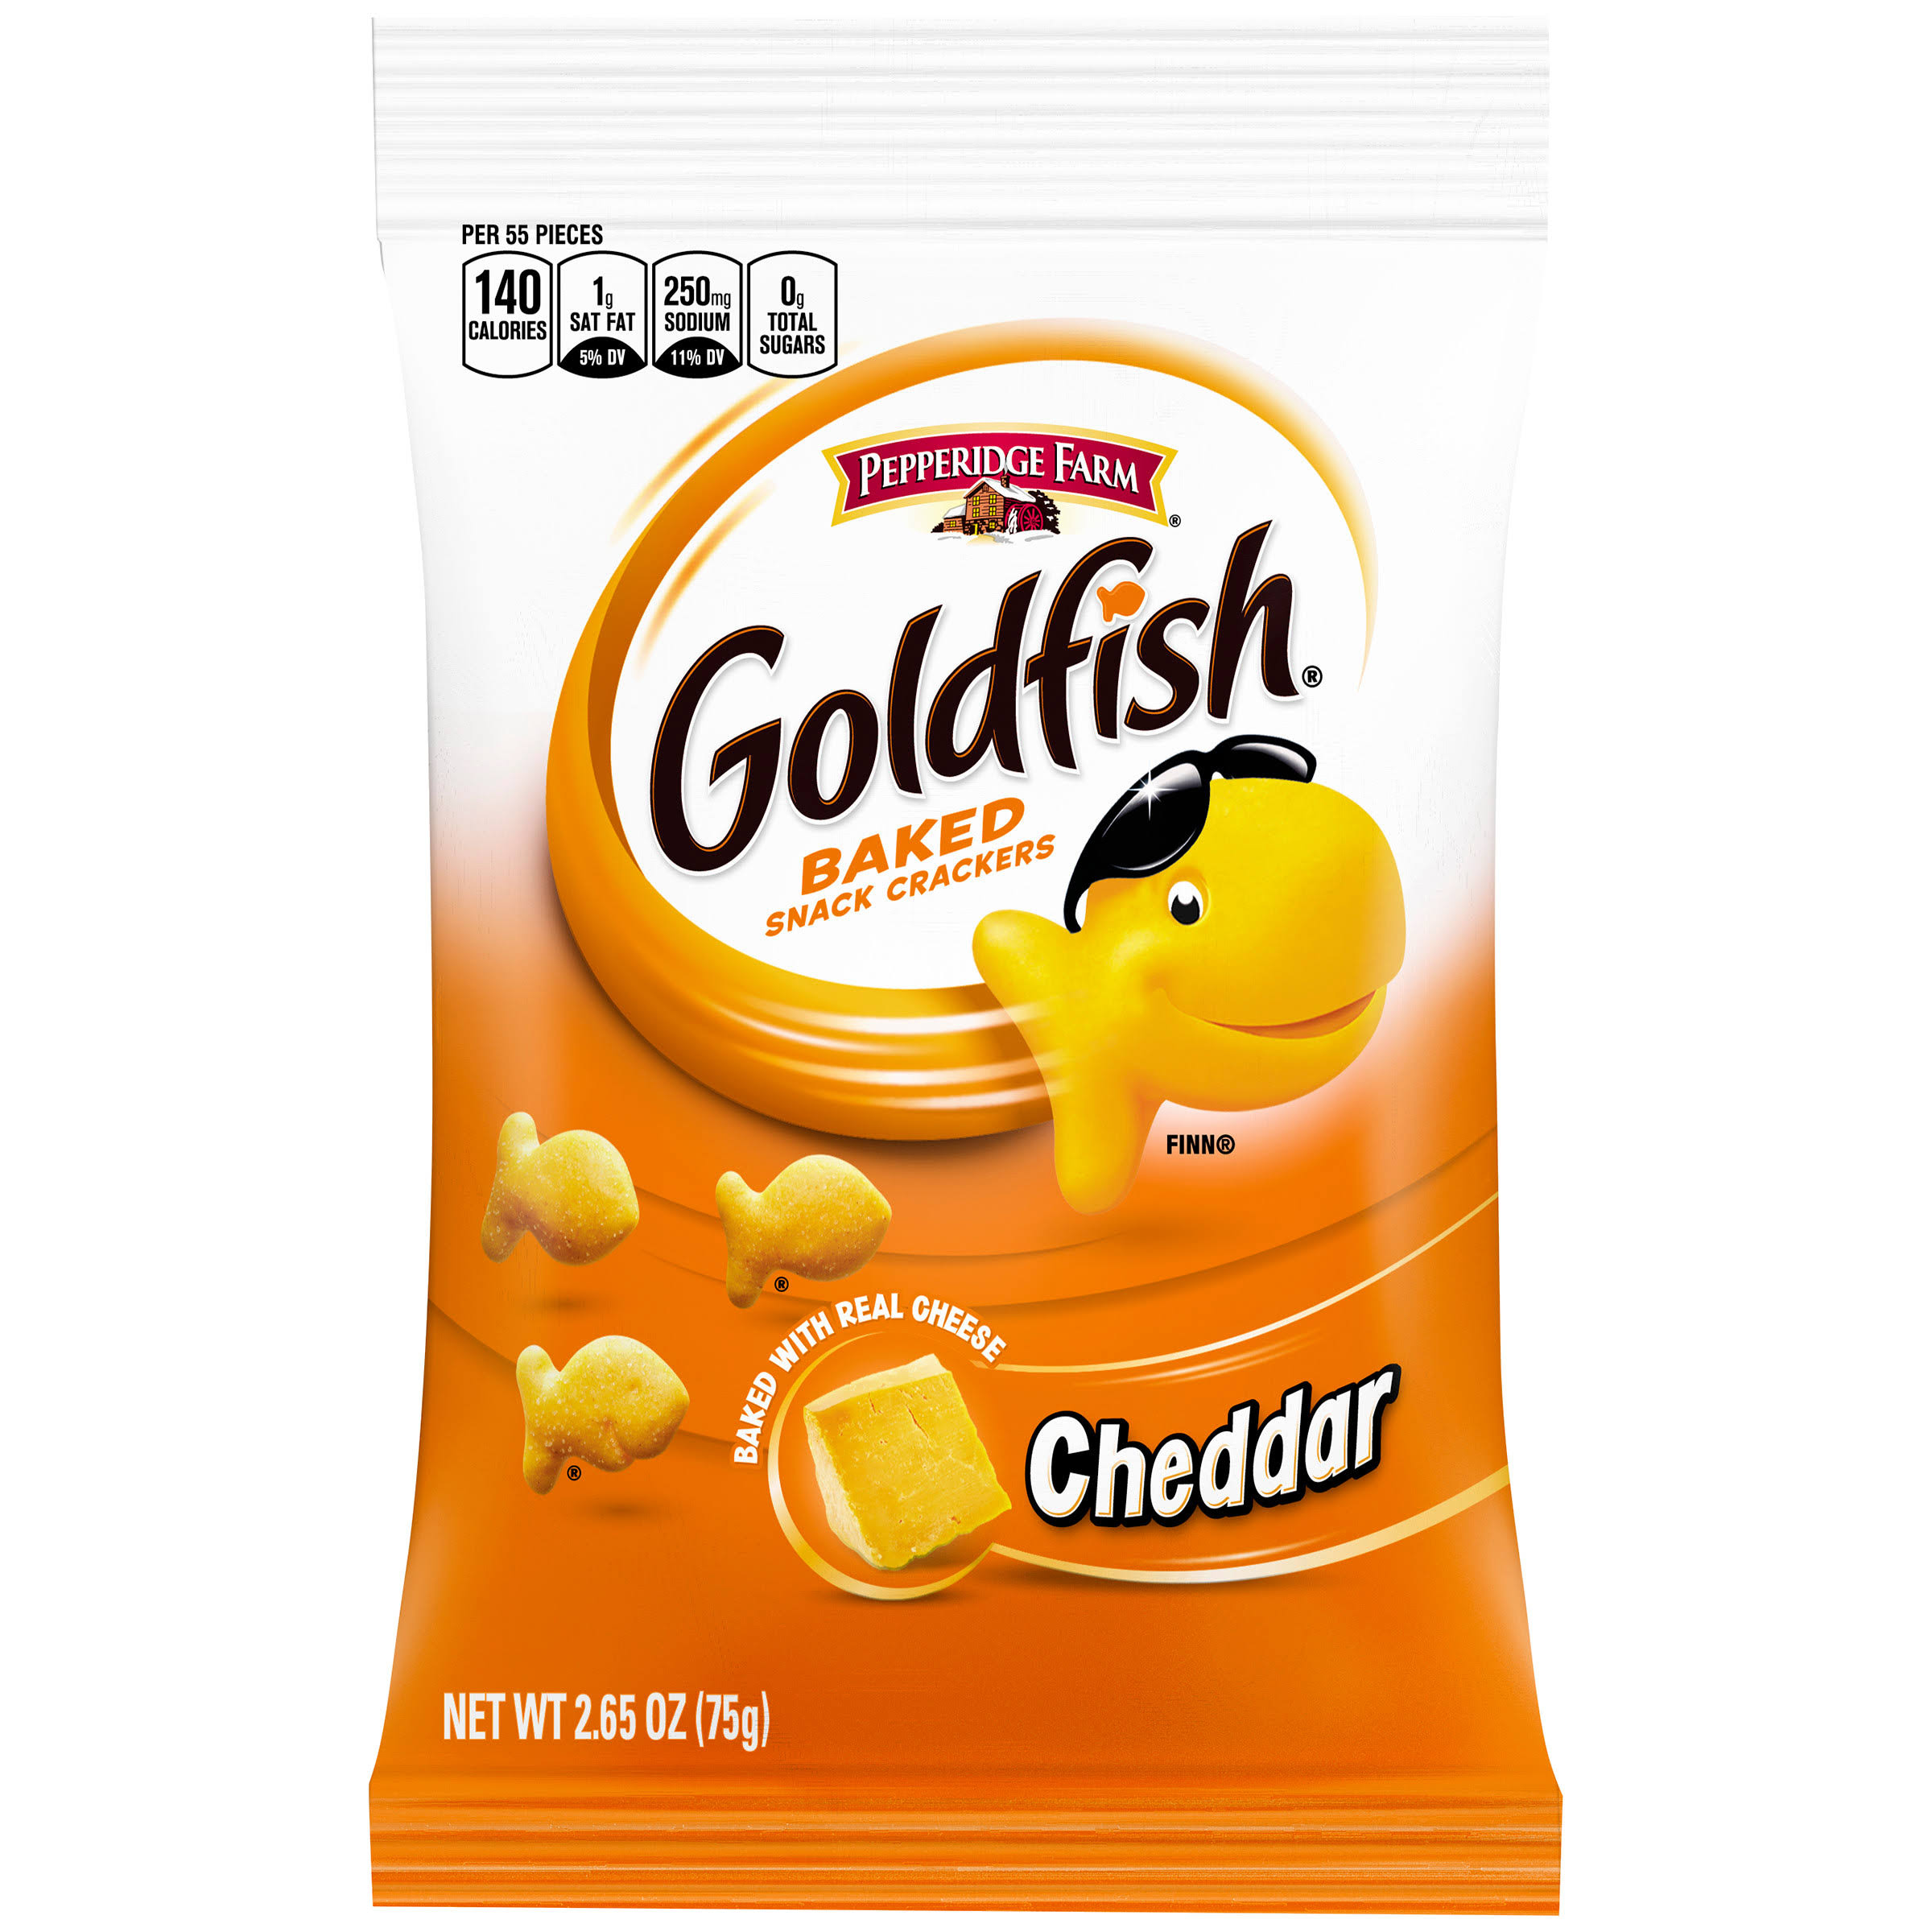 Pepperidge Farm Goldfish Baked Snack Crackers - Cheddar Cheese, 2.5oz